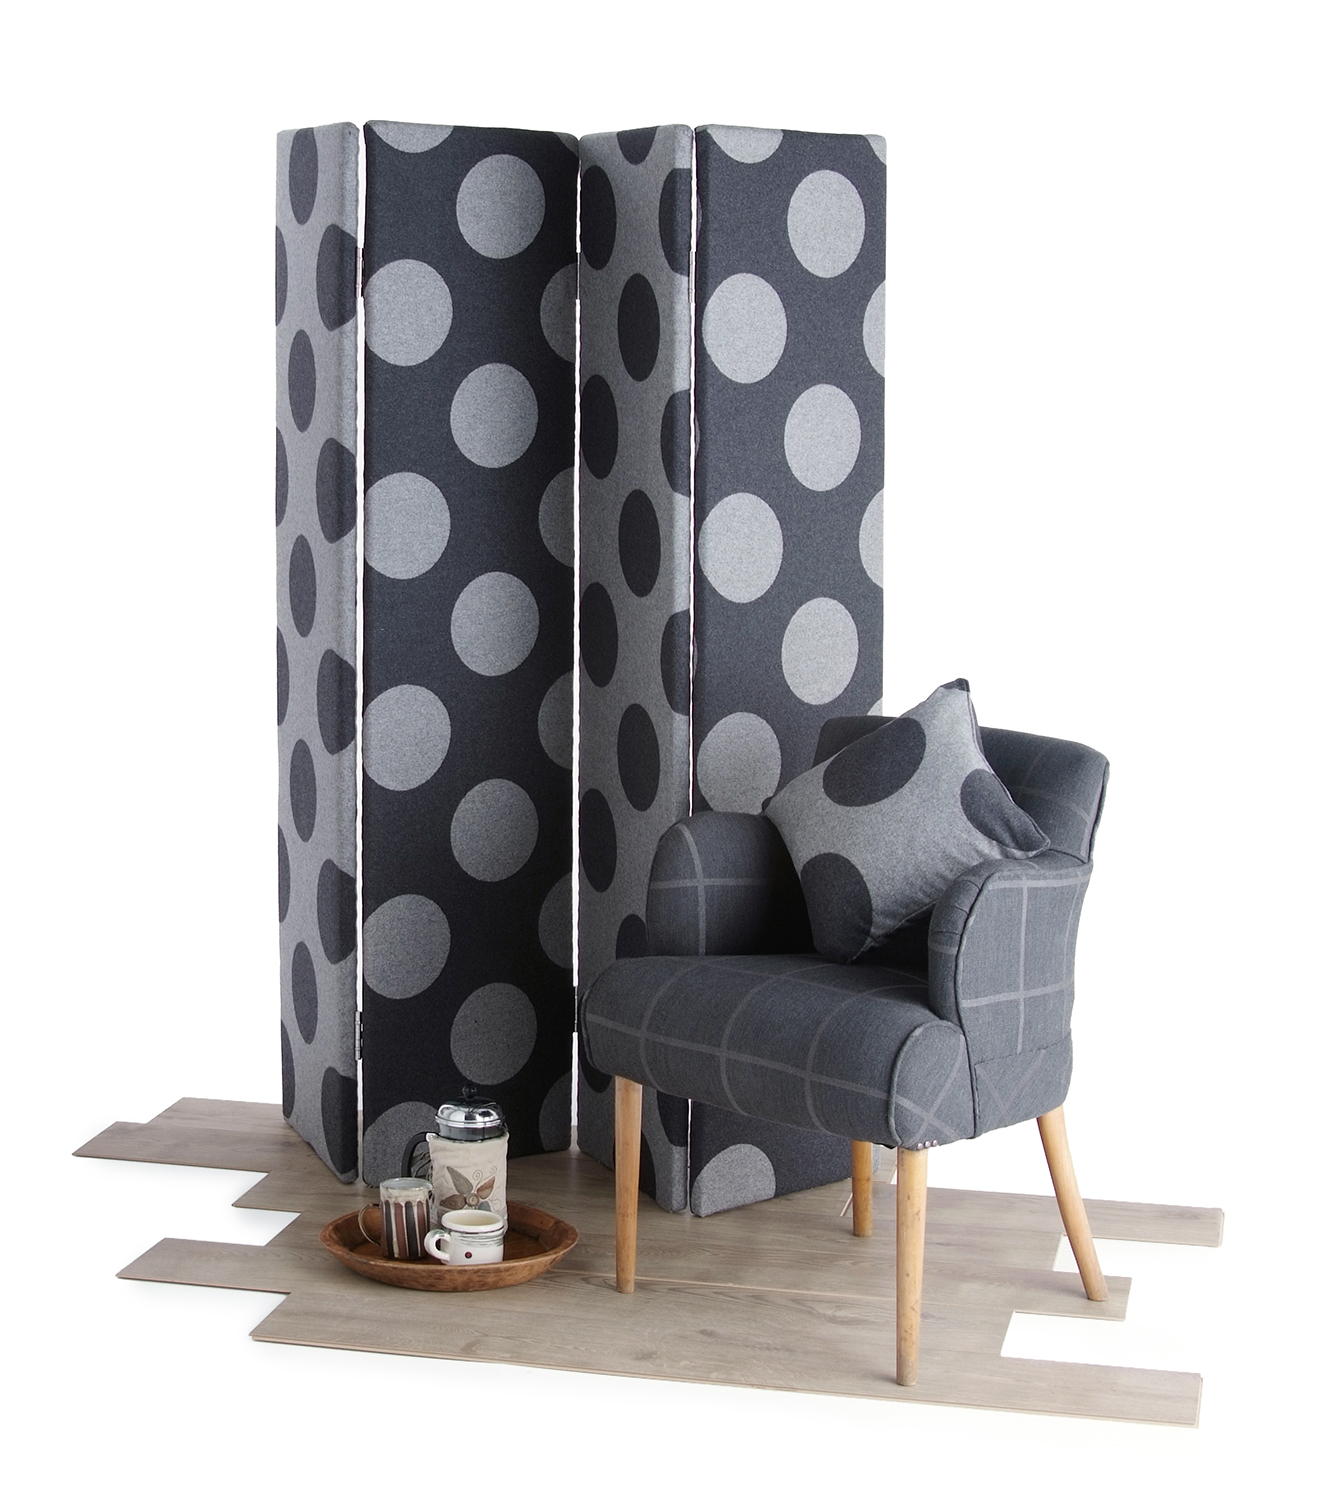 Material screen and armchair on wooden floor